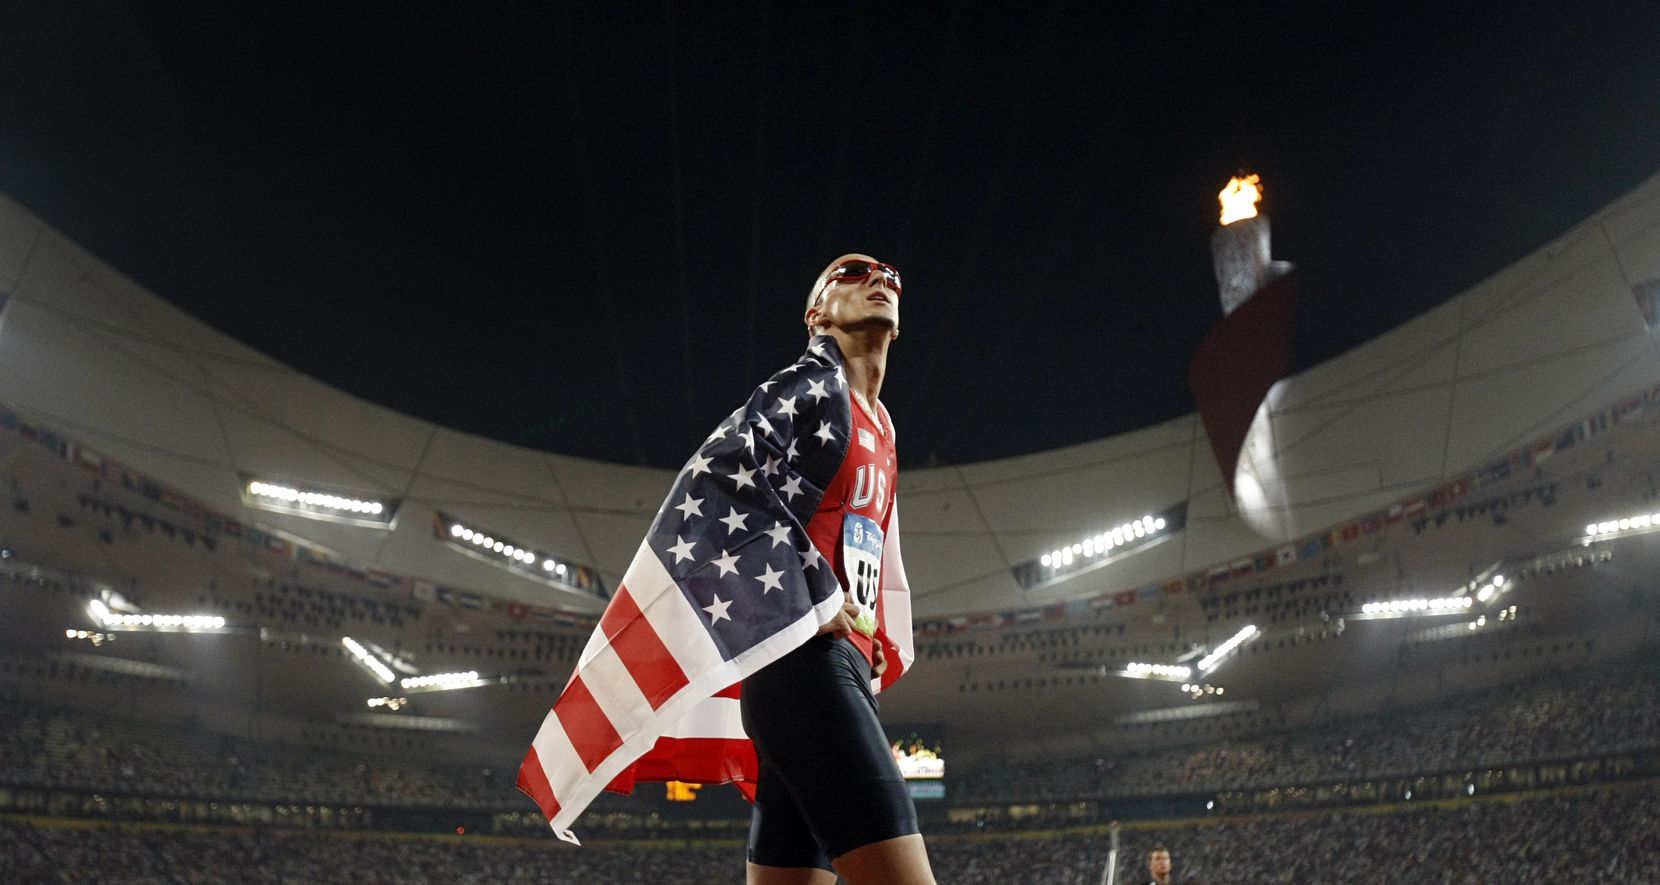 From 2008: U.S. Men's 4x400M Relay team member Jeremy Wariner watches the replay of his race on the National Stadium video board after his team won the gold medal, Saturday, August 23, 2008.